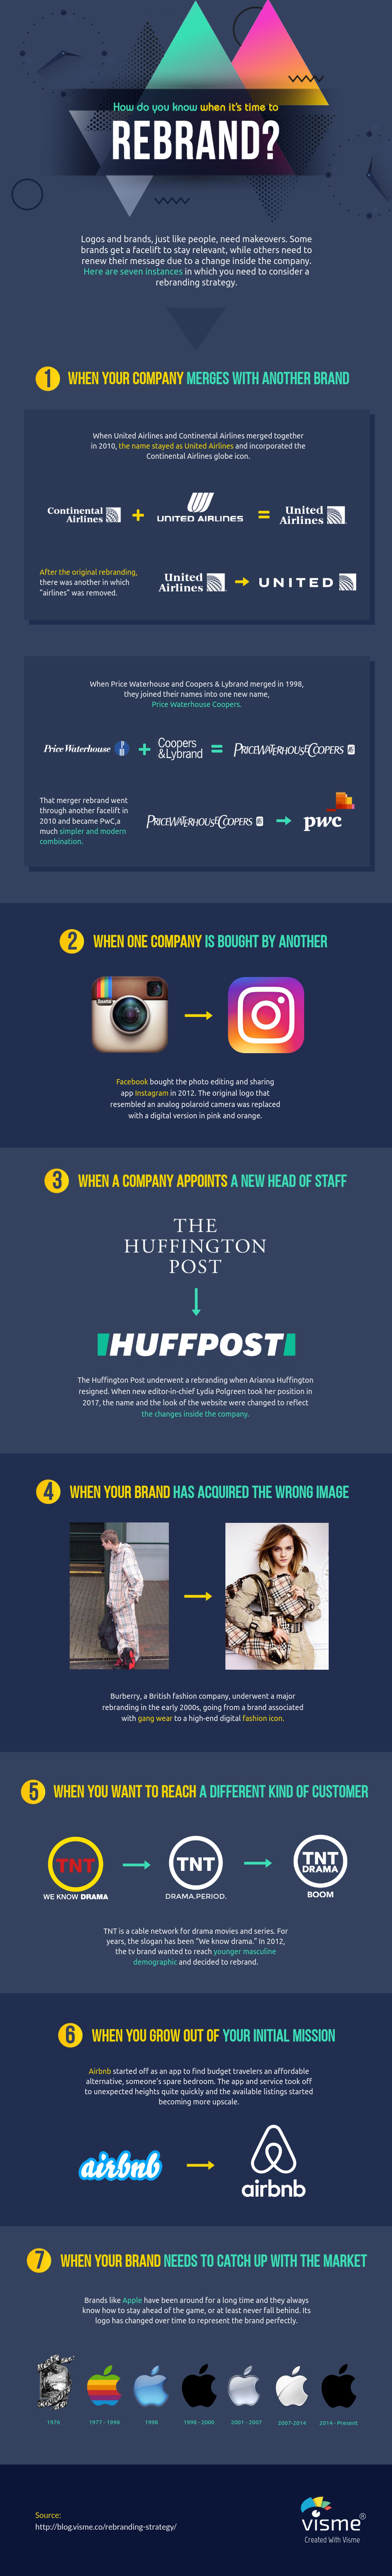 How Do You Know When It's Time to Rebrand? infographic